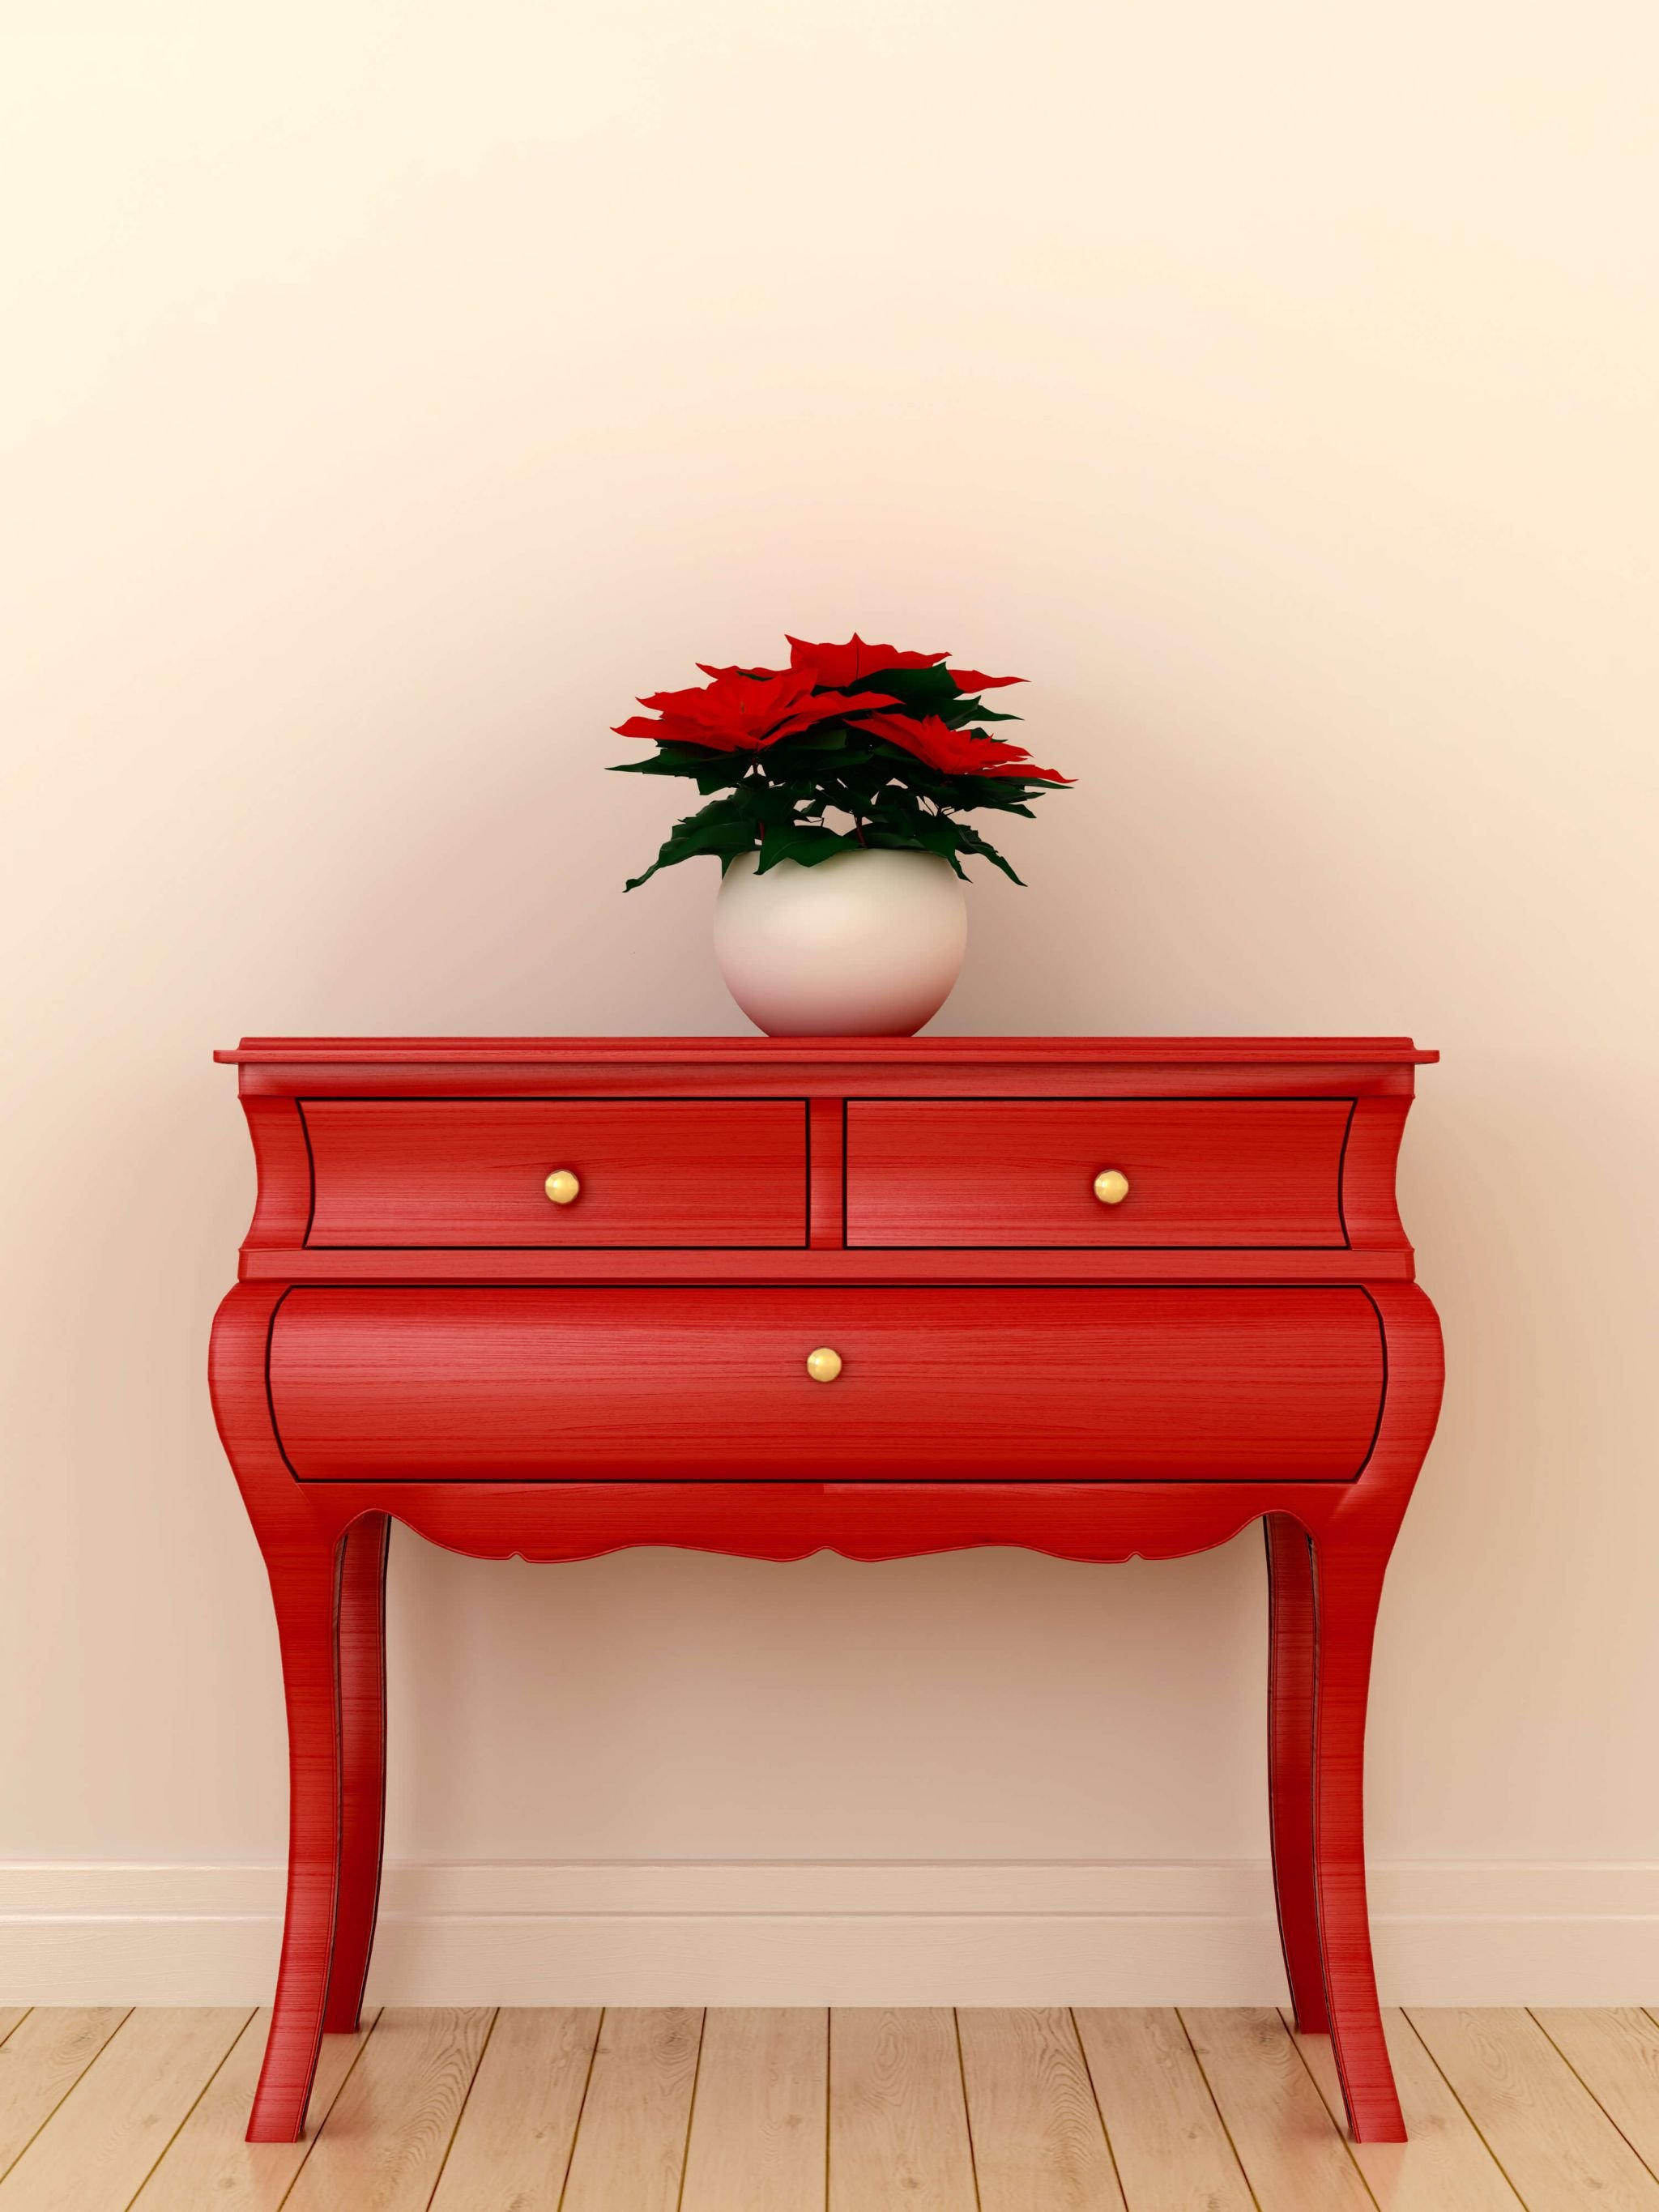 Poinsettia care - red poinsettia on a red cabinet